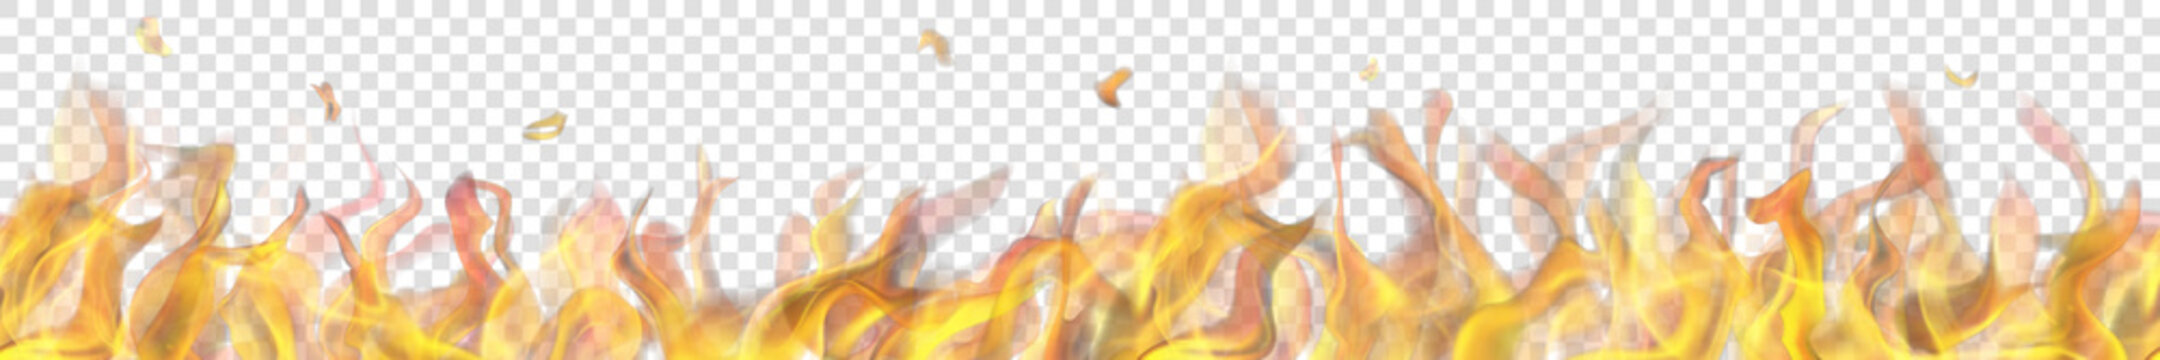 Translucent long fire flame with horizontal seamless repeat on transparent background. For used on light backgrounds. Transparency only in vector format